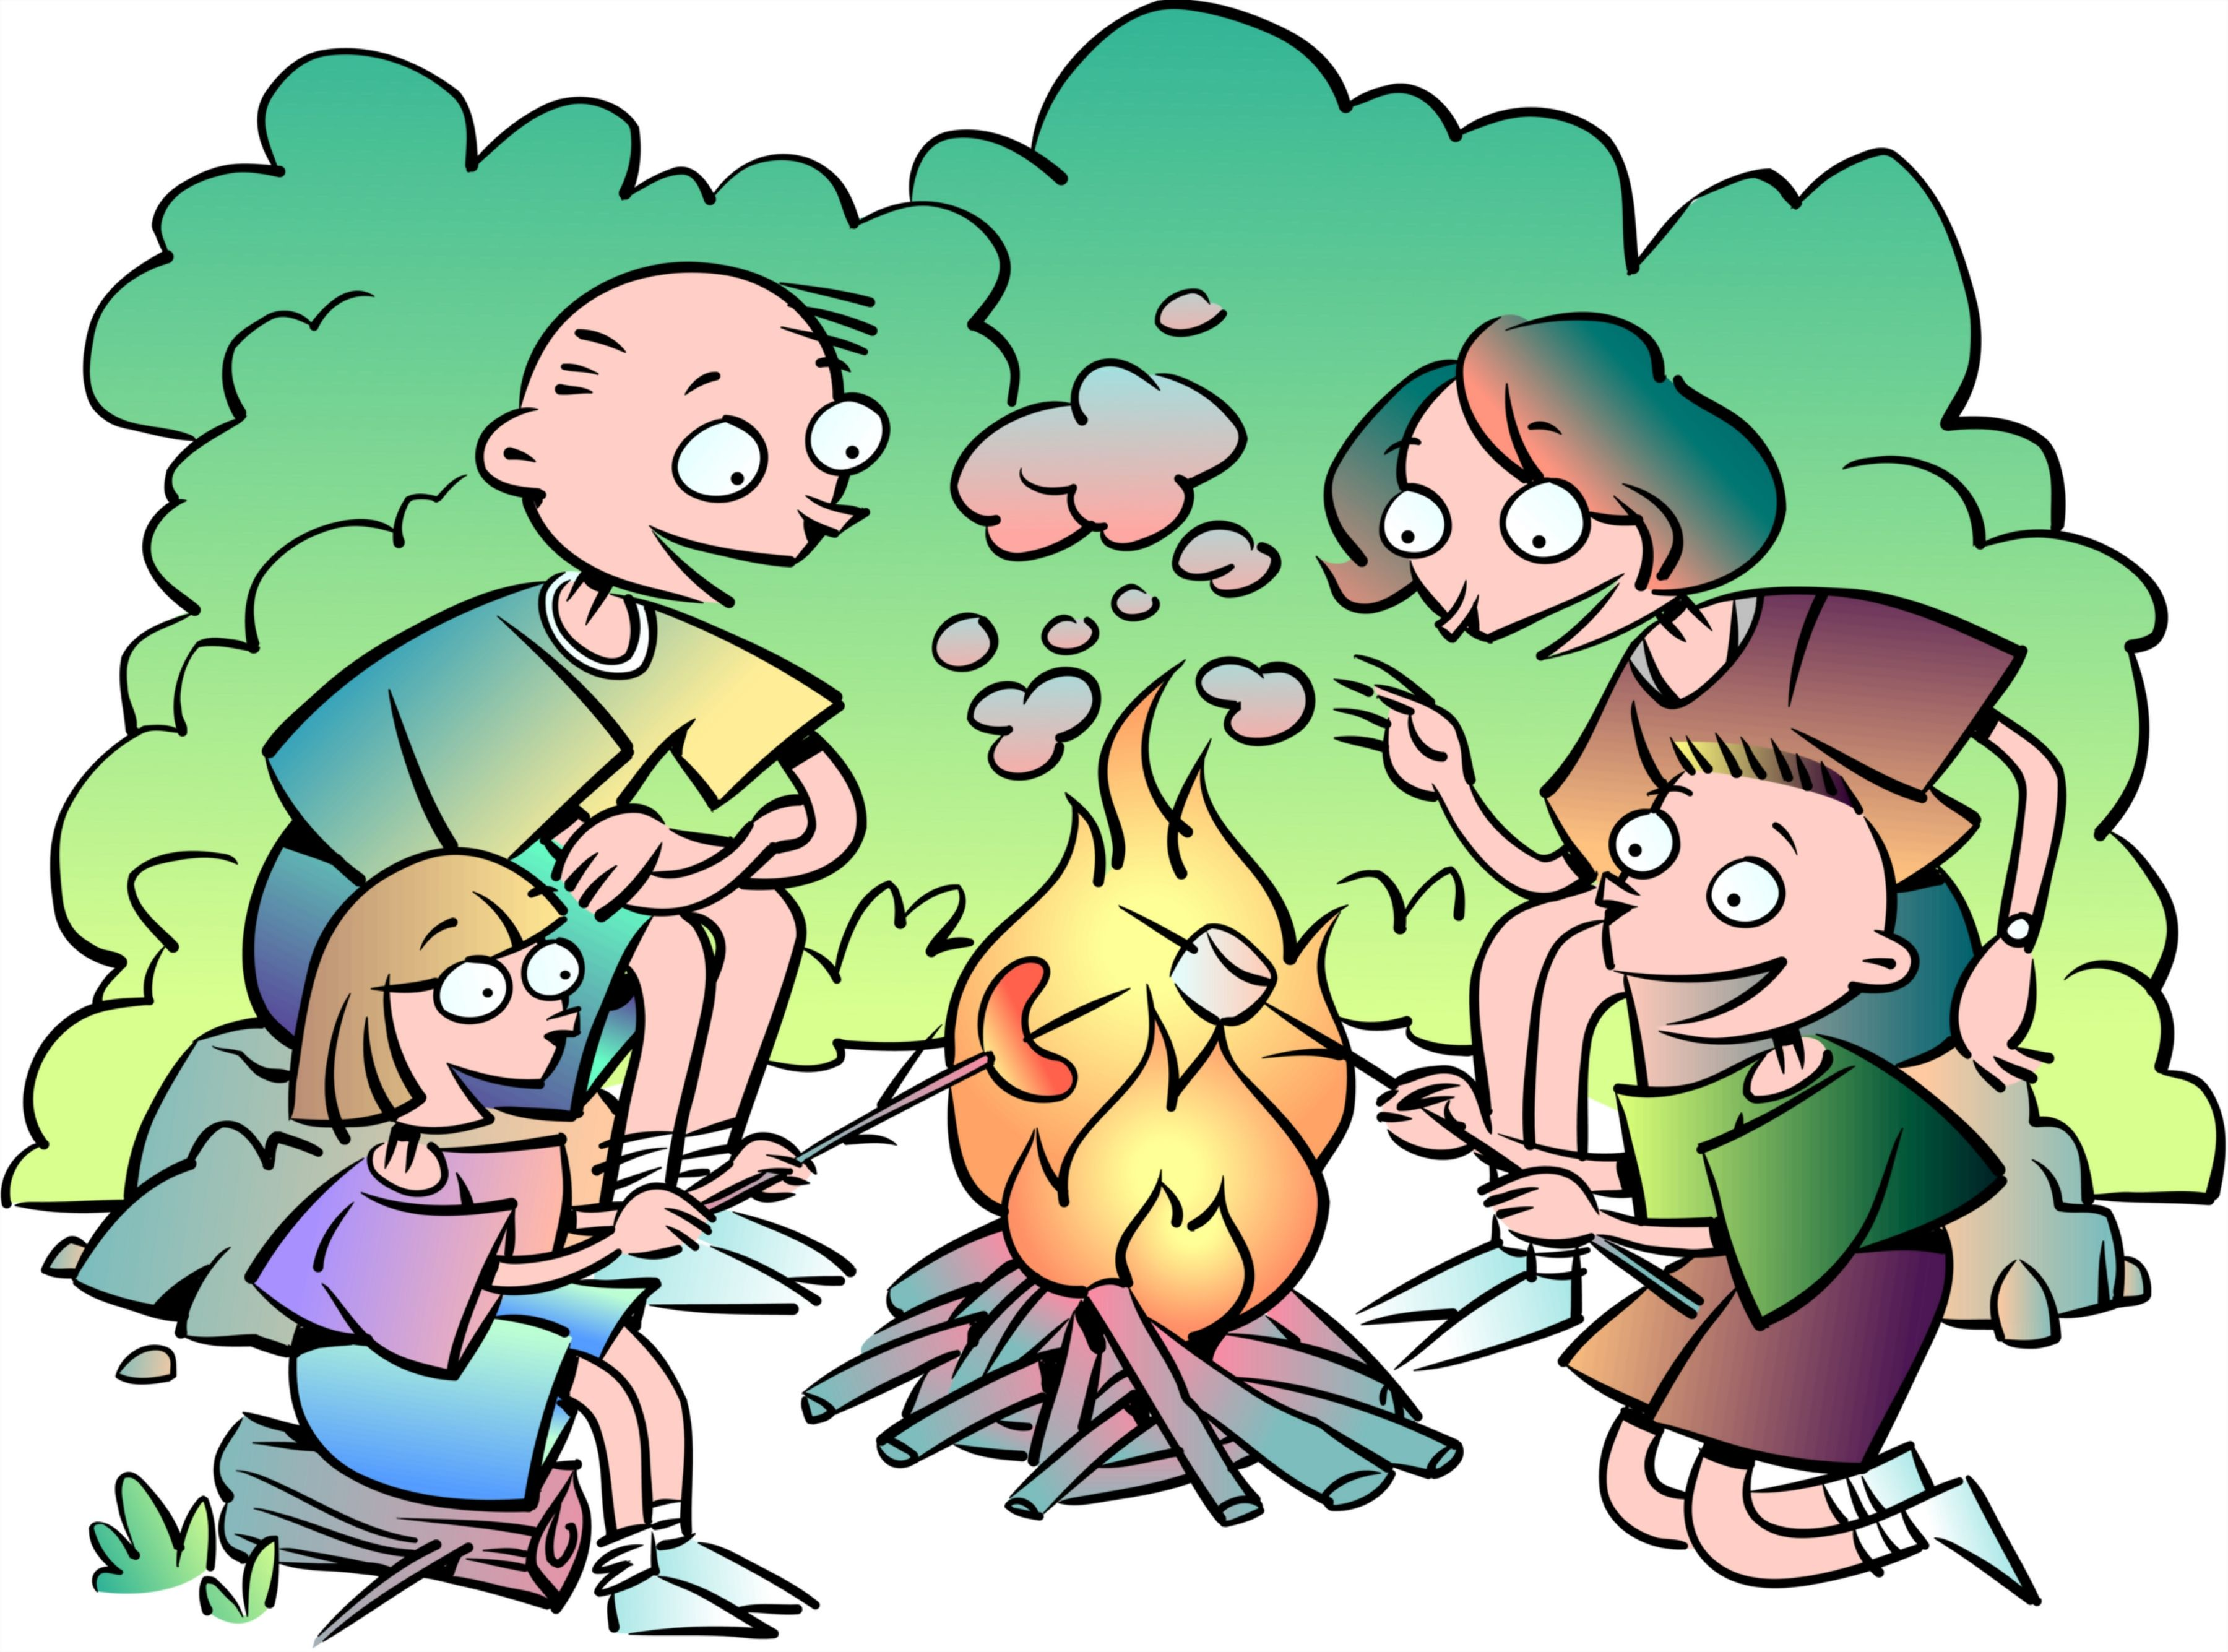 Singing around the campfire clipart.